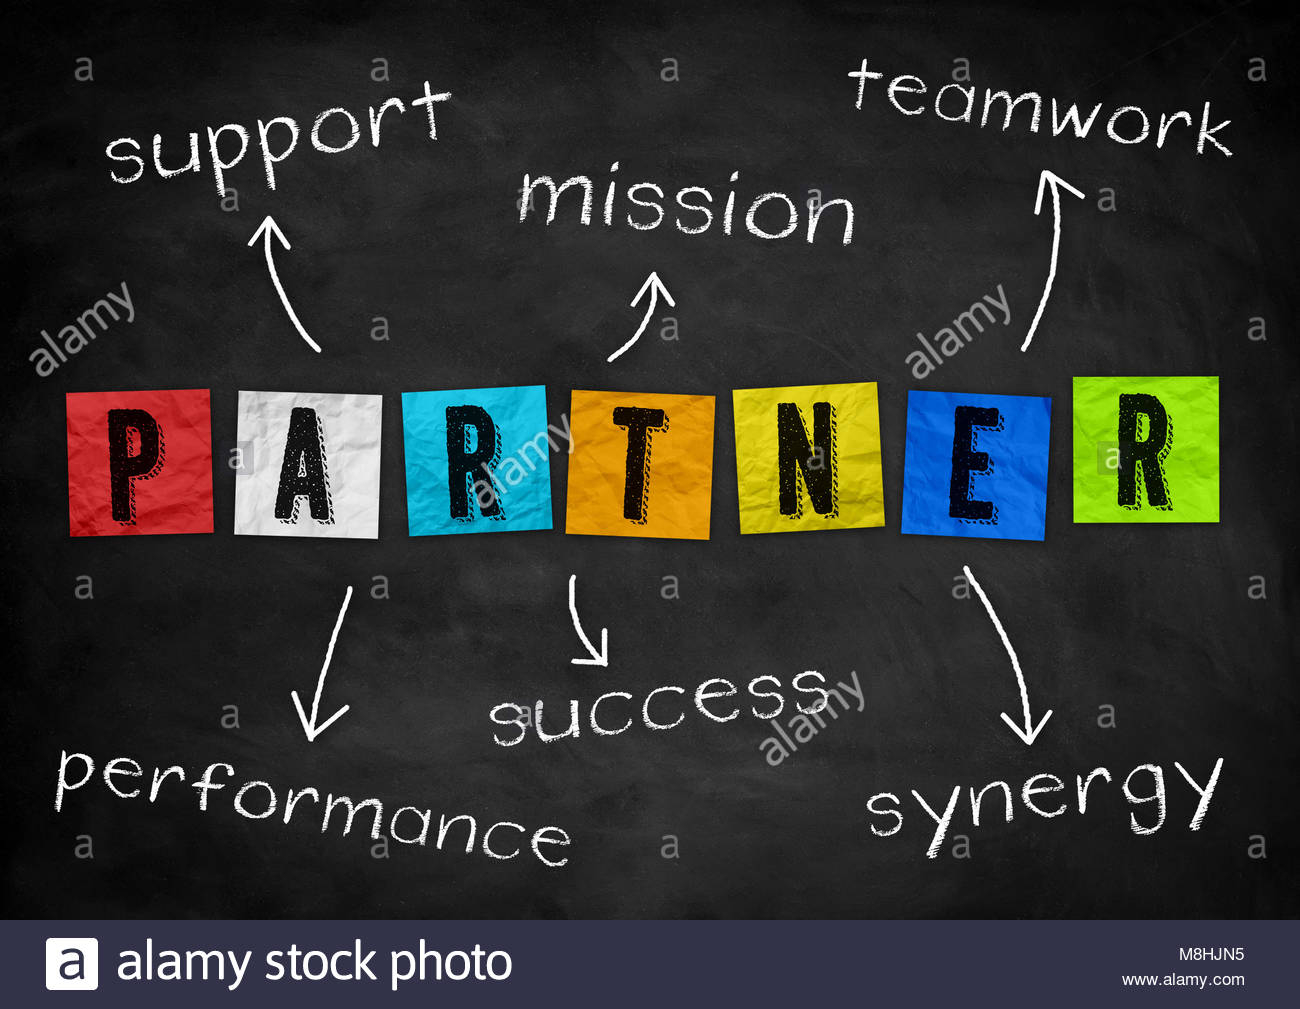 PARTNER - business concept - Stock Image